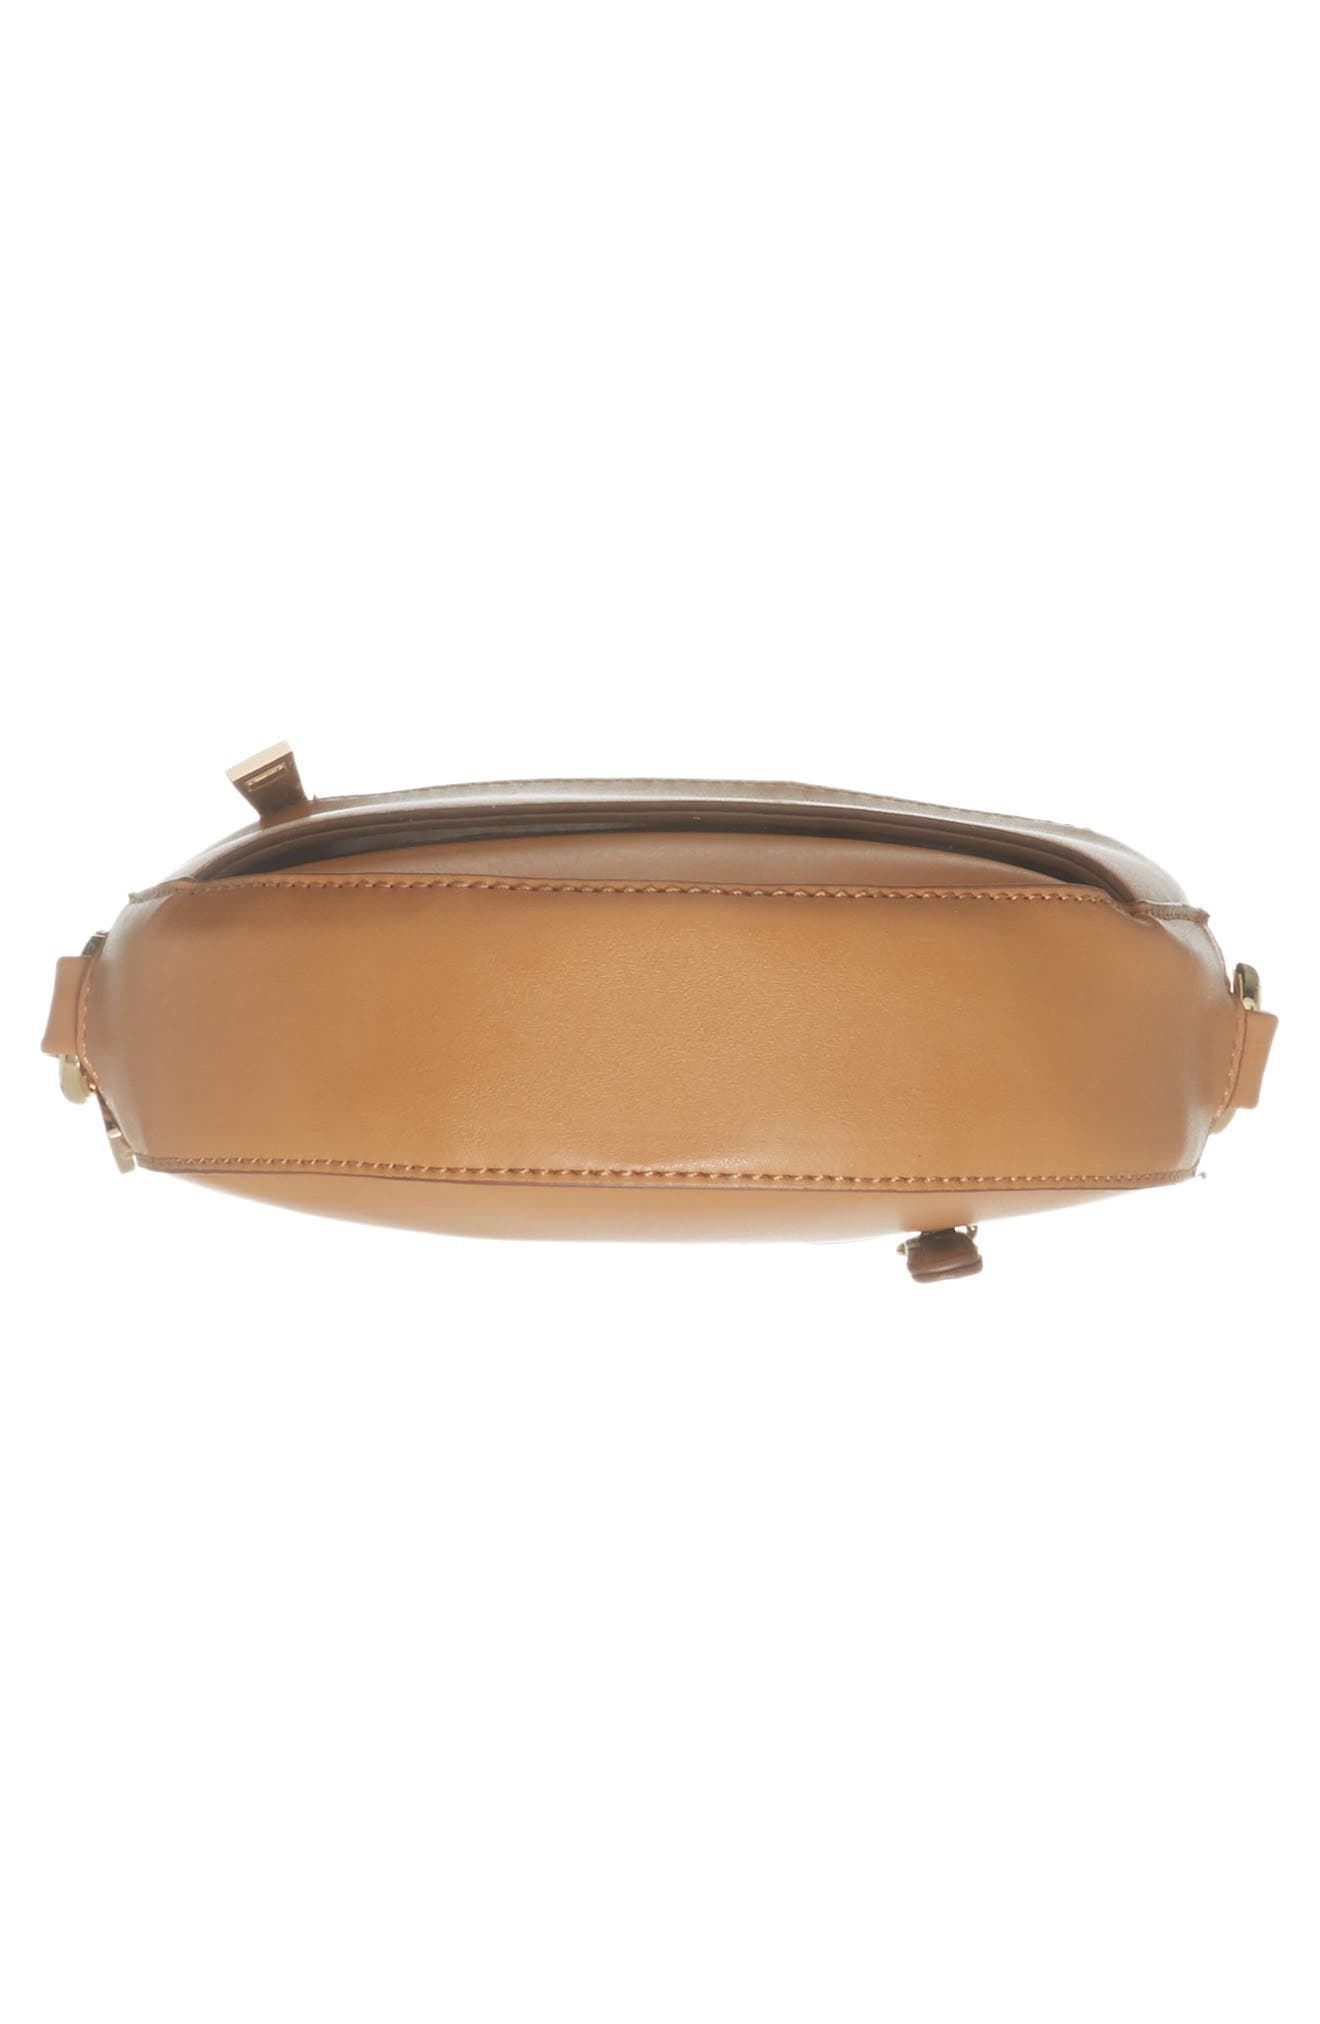 Faux Leather Canteen Crossbody Bag,                             Alternate thumbnail 6, color,                             Camel